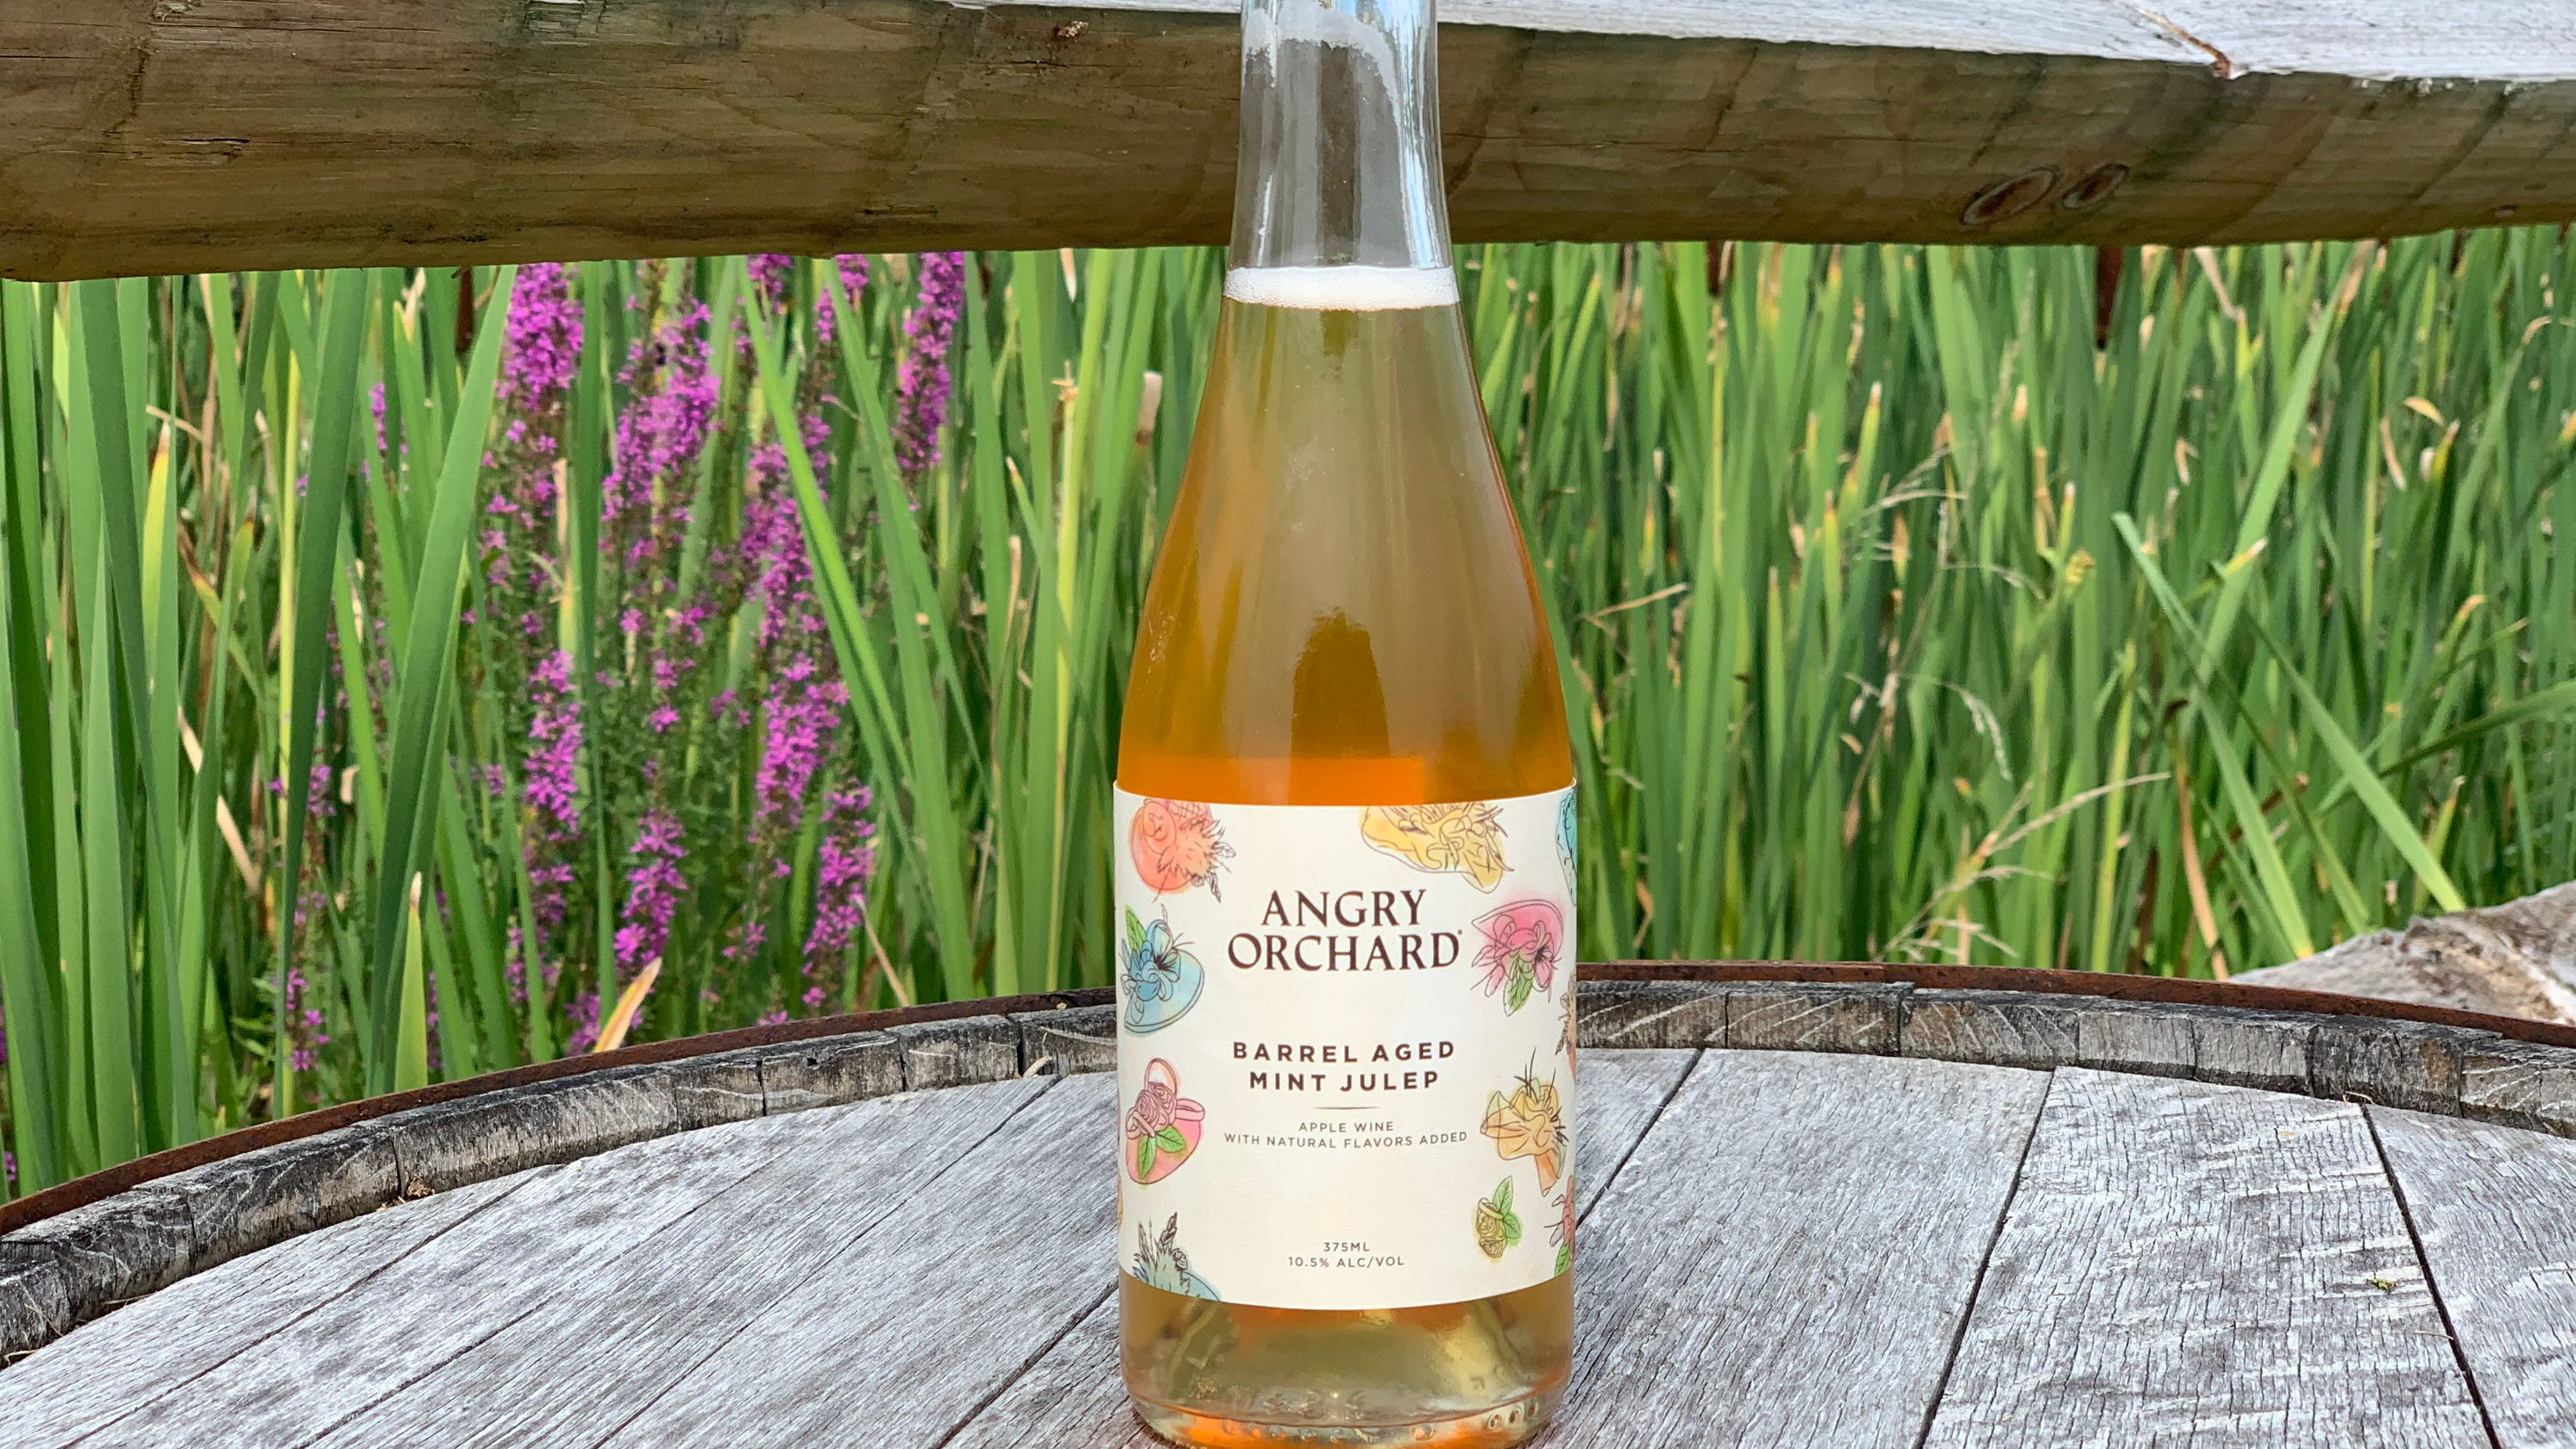 Walden's Angry Orchard has connection to Kentucky Derby mint juleps